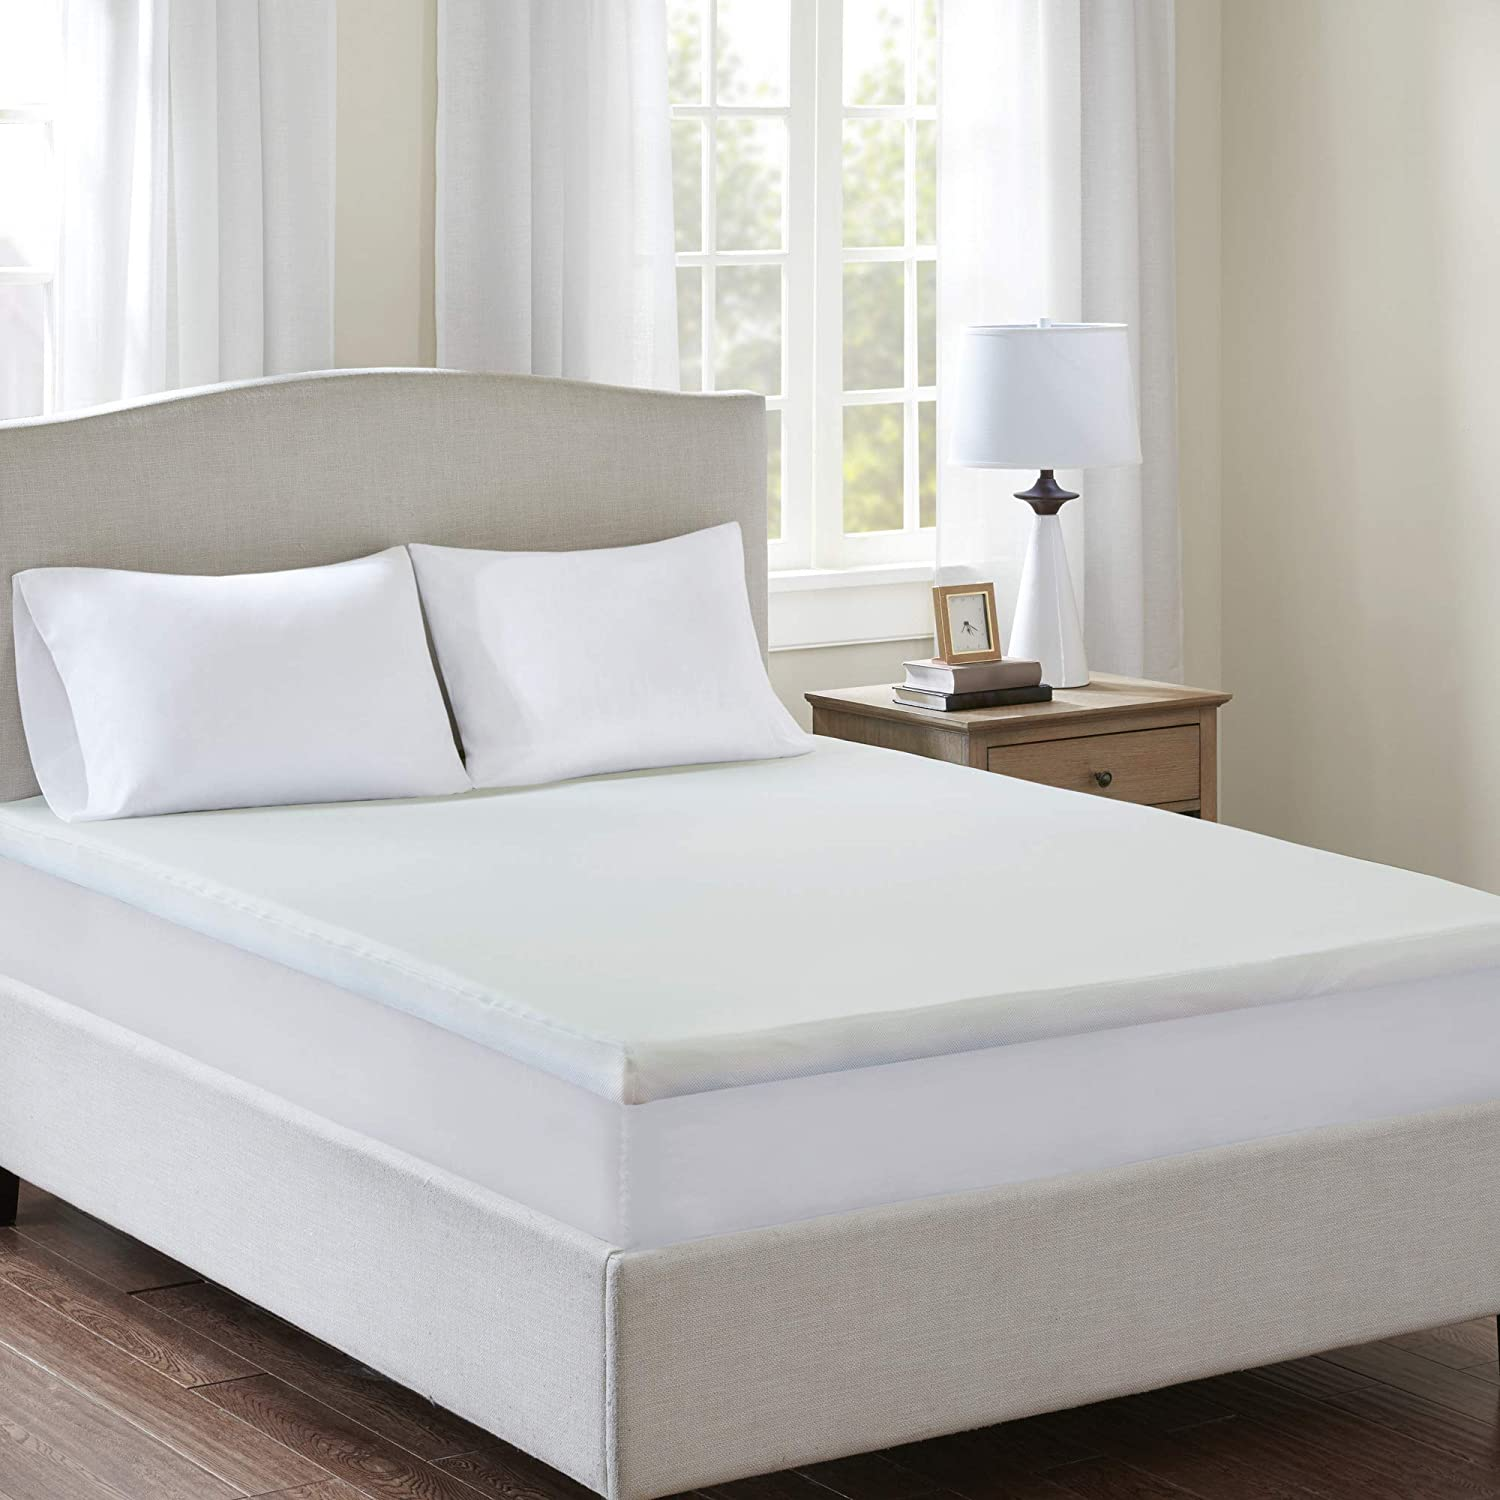 """Flexapedic by Sleep Philosophy All All Seasons 3"""" Cooling-To-Warming Reversible Memory Foam Mattress Pad Topper Cover Protector, Twin Size, White"""